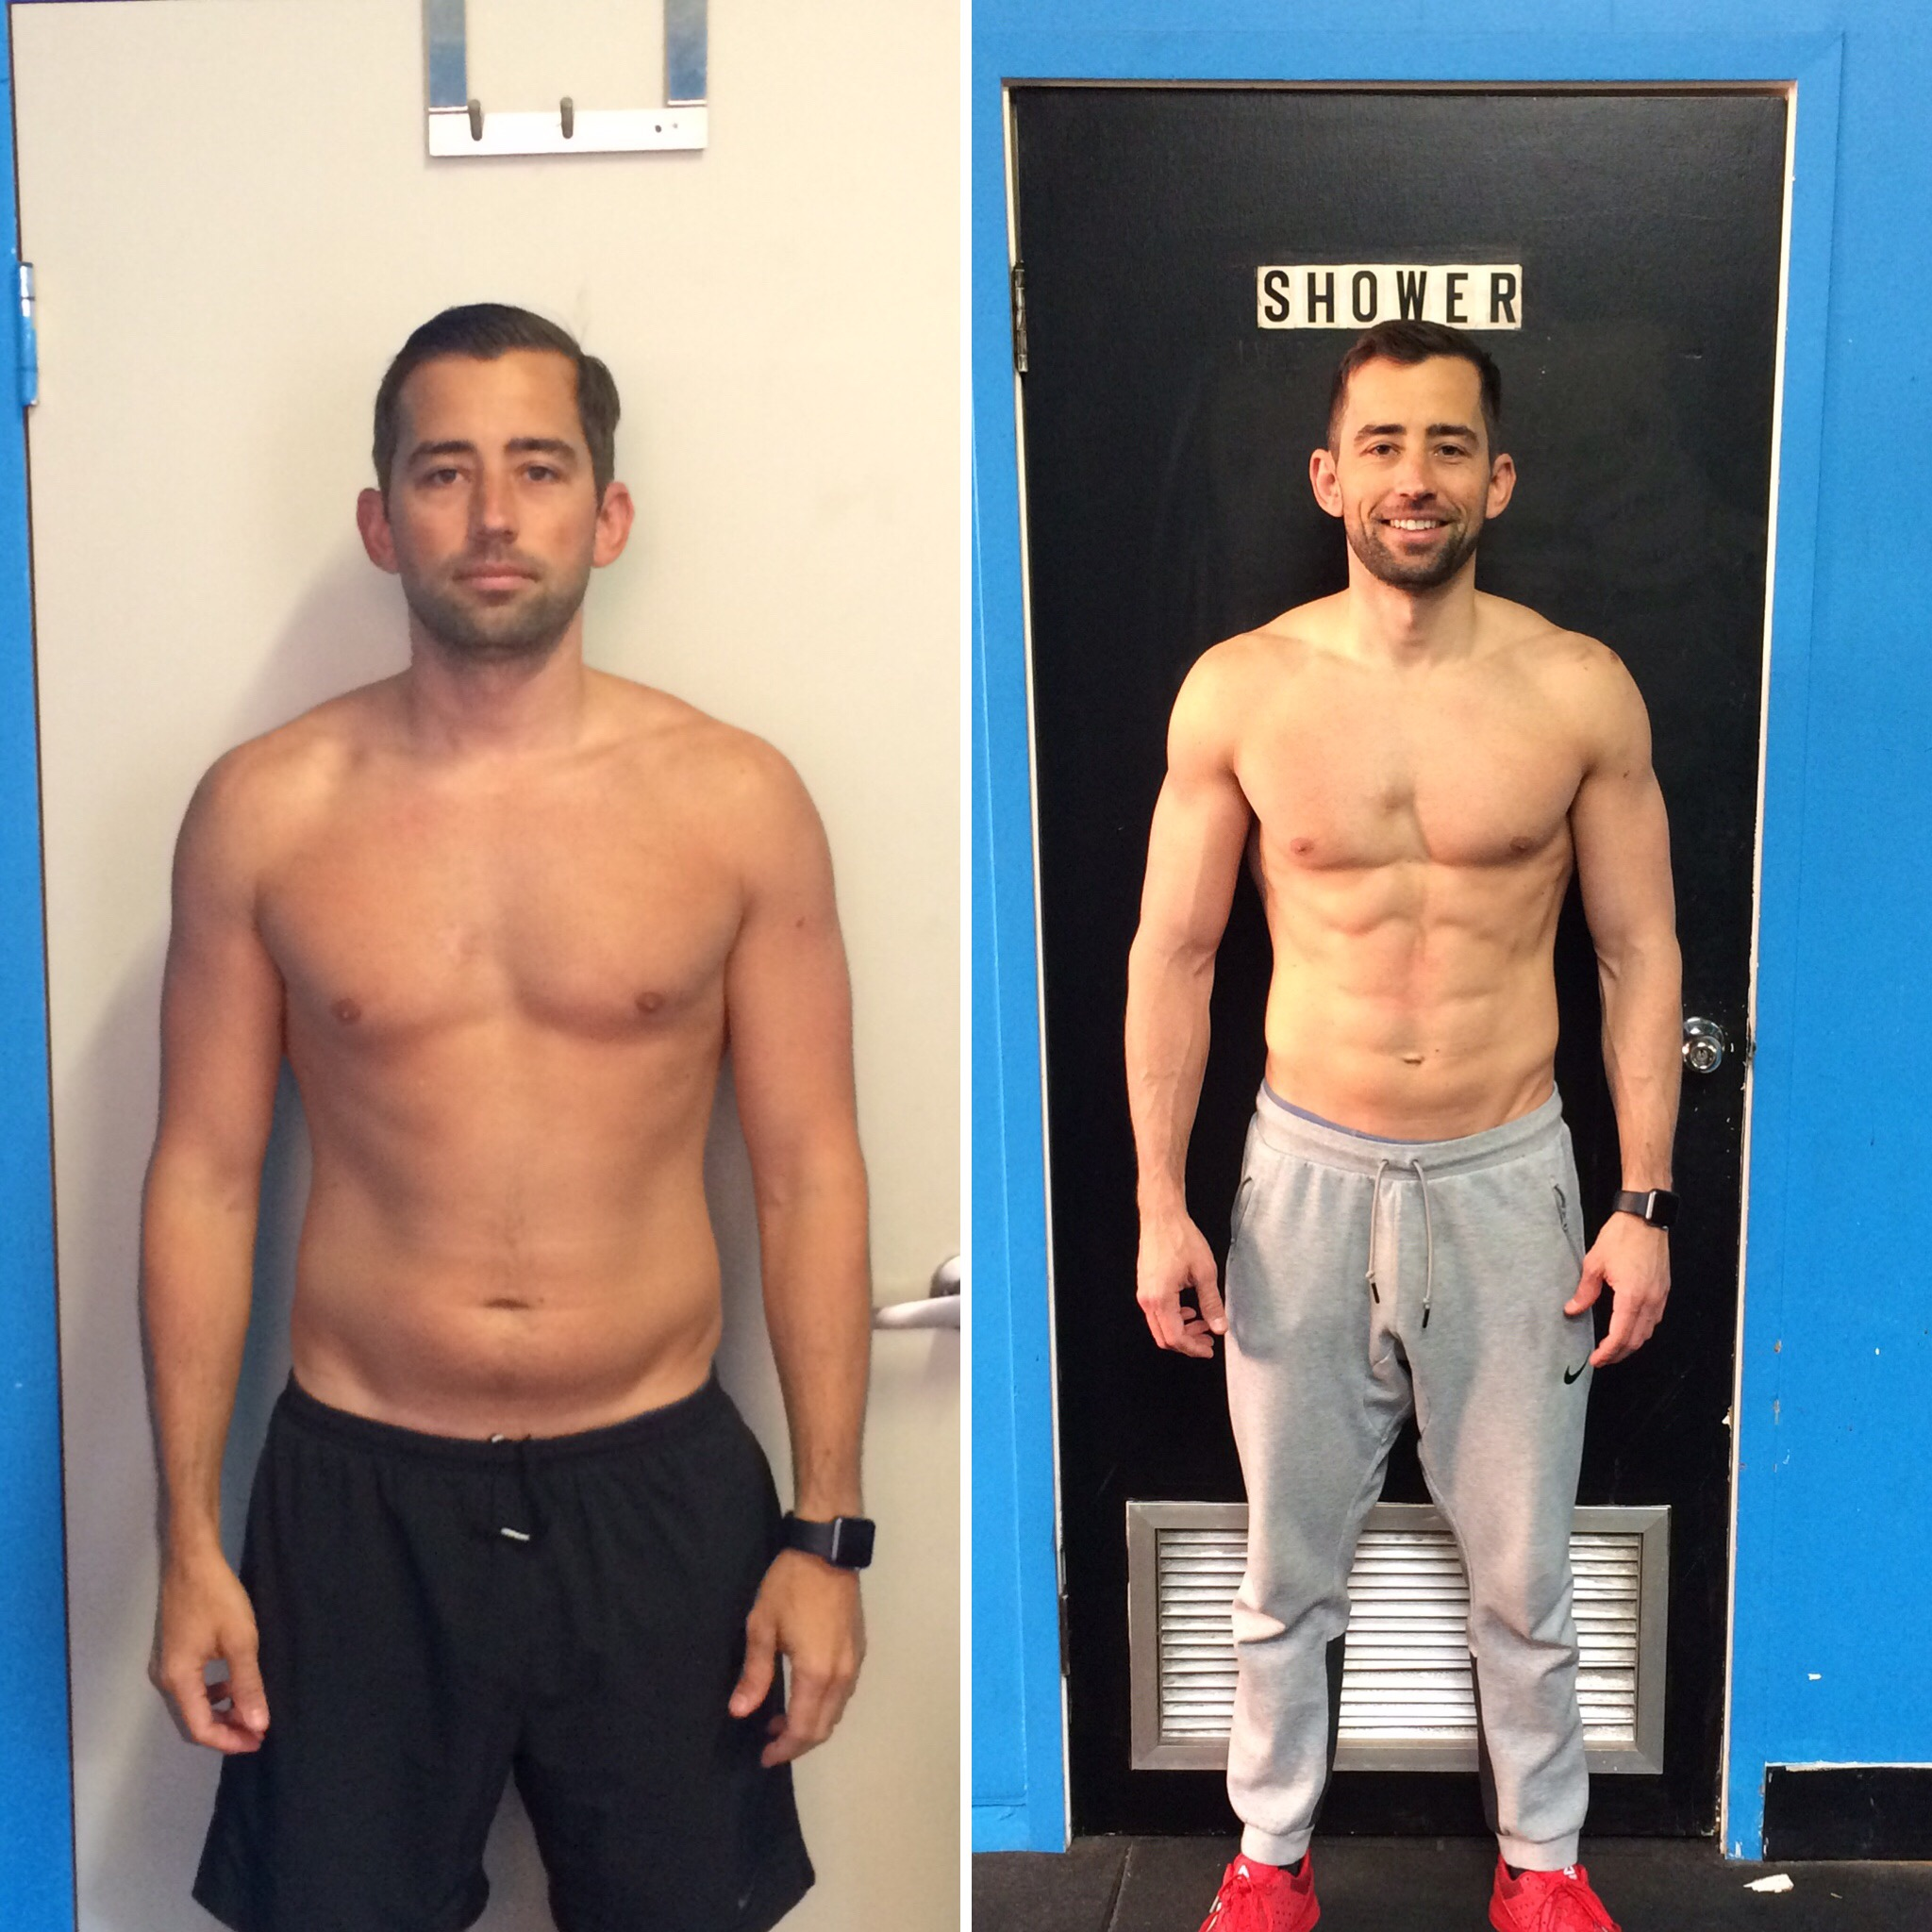 Eric has seen huge physical changes, but some of the biggest areas of improvement have come from non-physical changes, such as improved productivity, concentration, and removal of self-limiting beliefs.